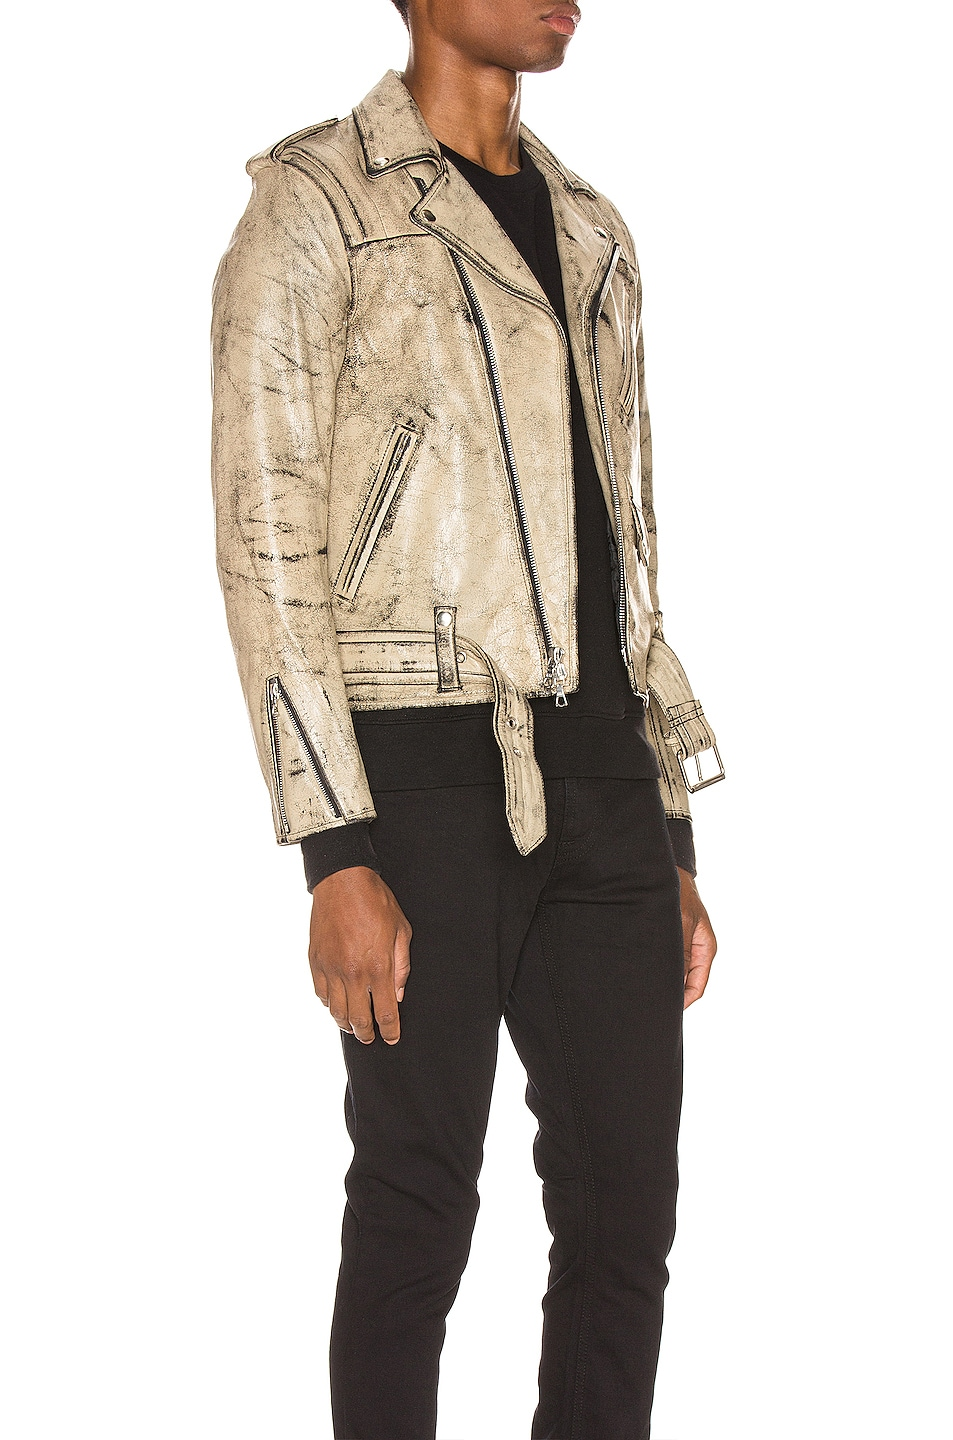 Image 3 of JOHN ELLIOTT x Blackmeans Rider's Jacket in Black & Ivory Paint